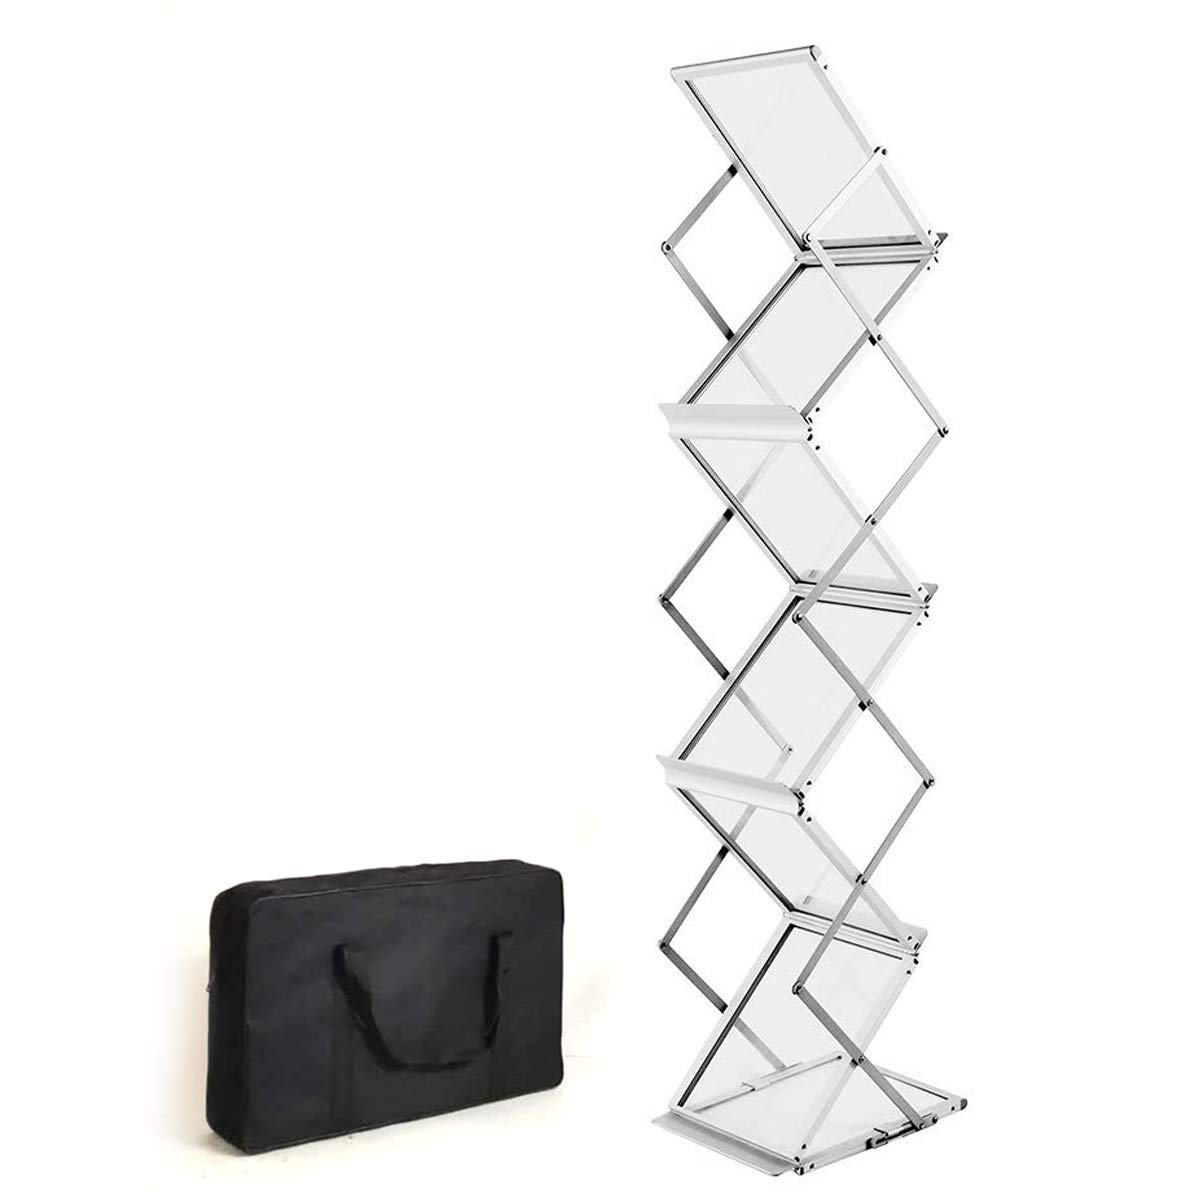 HUAZI Foldable Magazine Rack Brochure Stand Catalog Literature Rack Portable 6 Pockets with Carrying Bag for Trade Show Exhibitions Office Retail Store